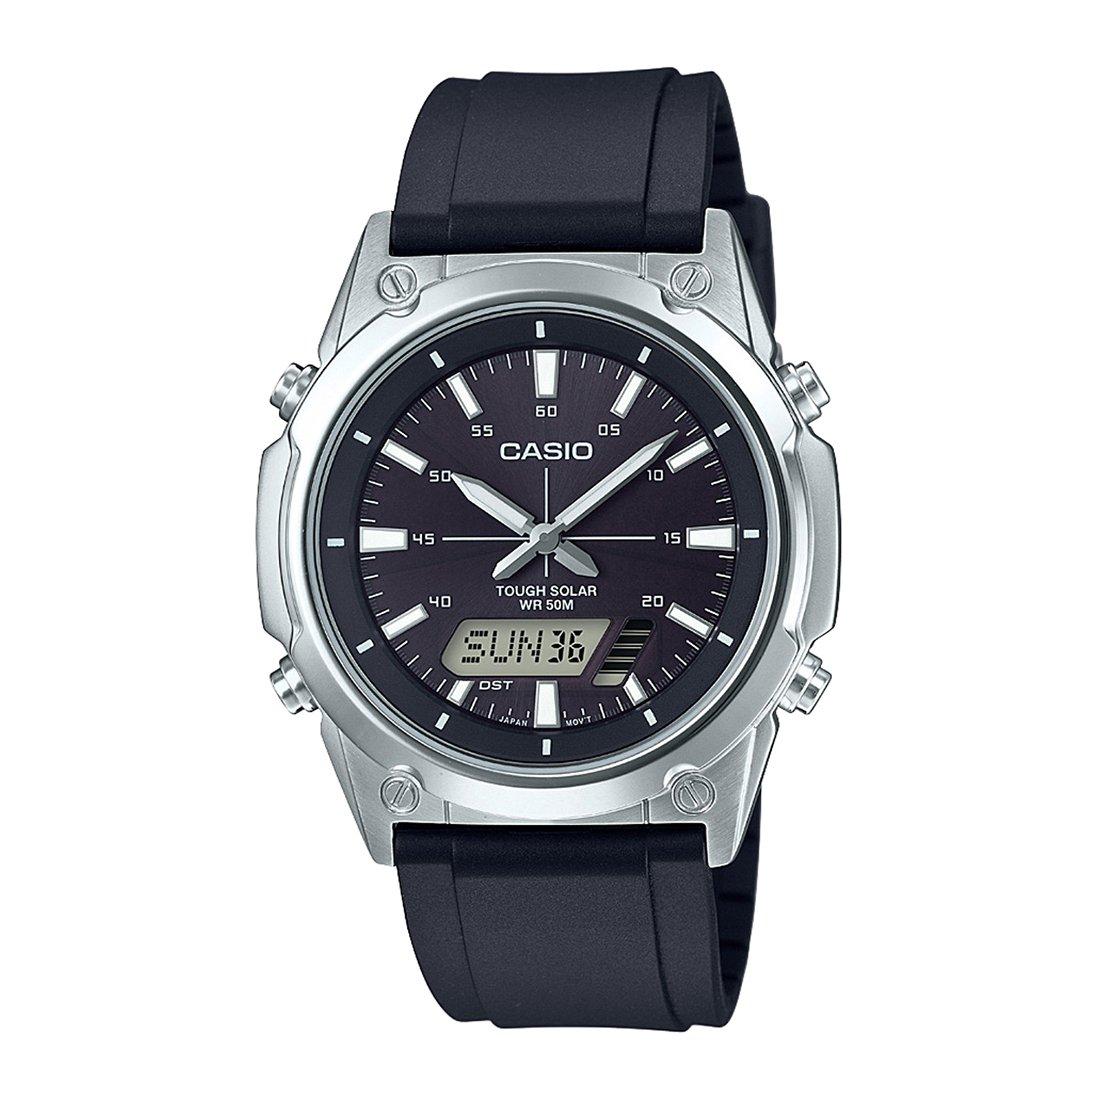 Buy Casio Enticer Analog Digital Black Dial Mens Watch Amw S820 Ltp 1378l 2e Women Quartz Blue 1avdf A1295 Online At Low Prices In India